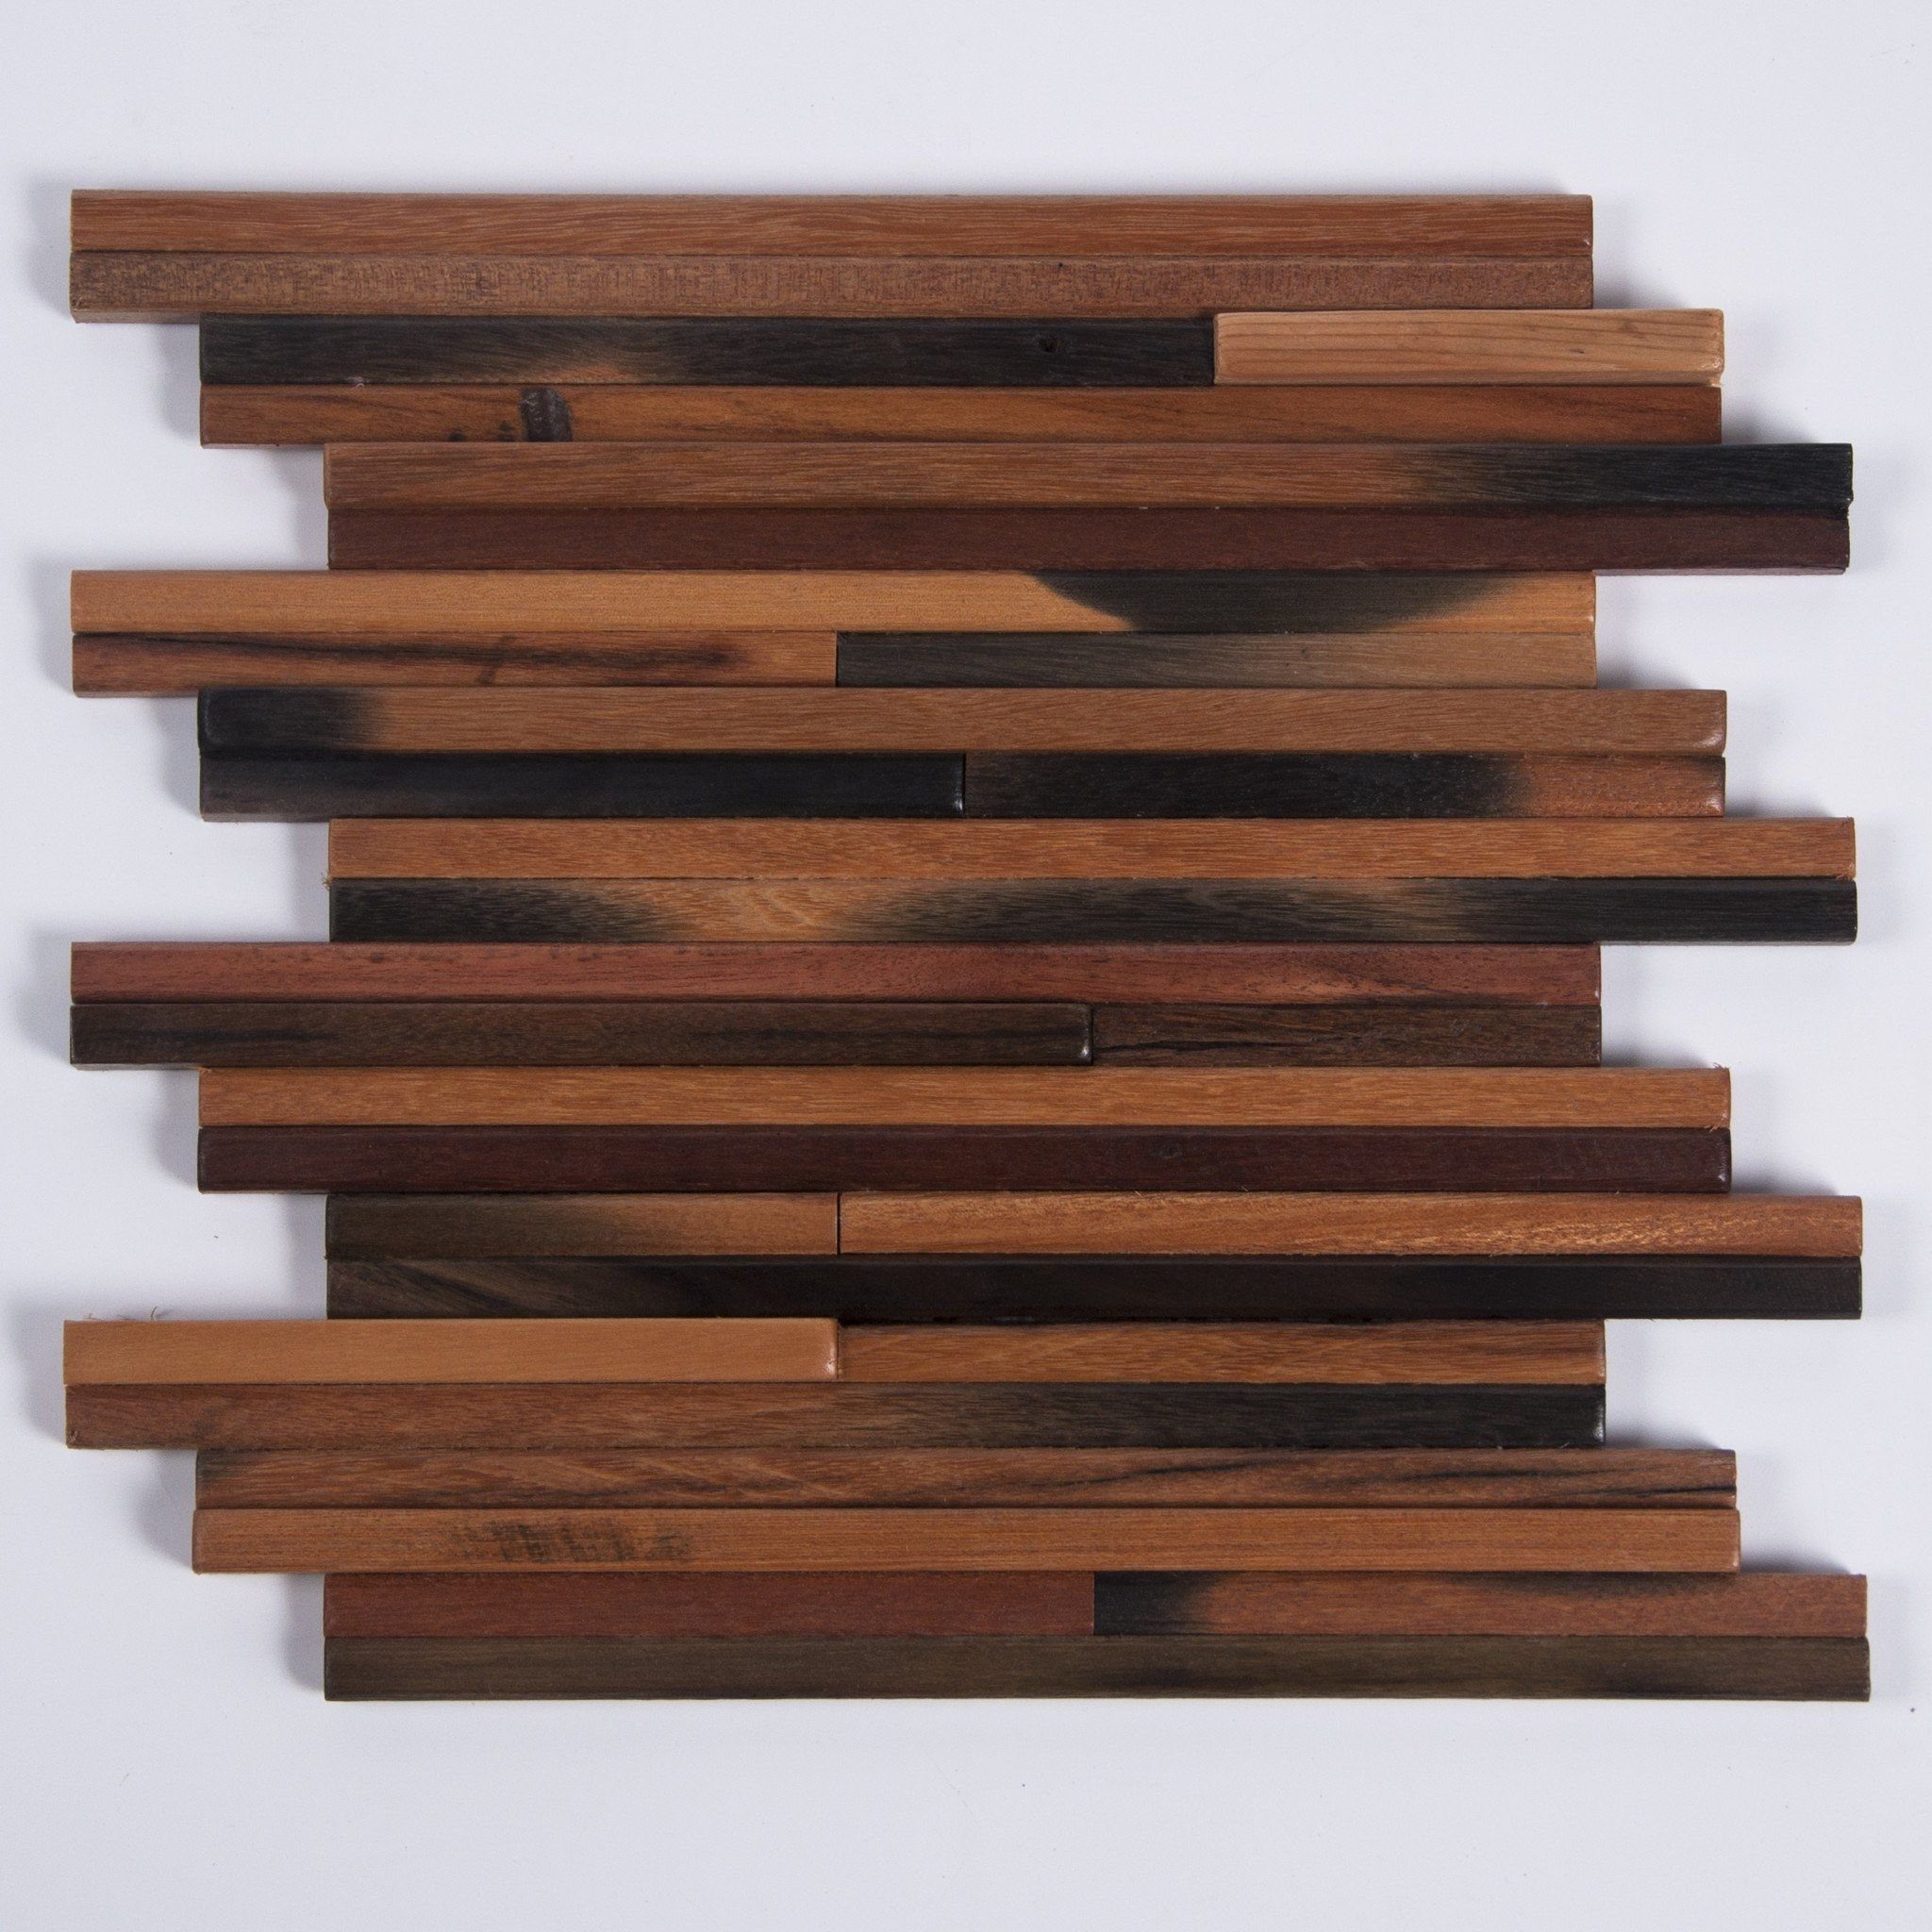 Pin On Diy Home Decor Antique Reclaimed Teakwood For Accent Walls Fire Place Rustic Kitchen Backsplash